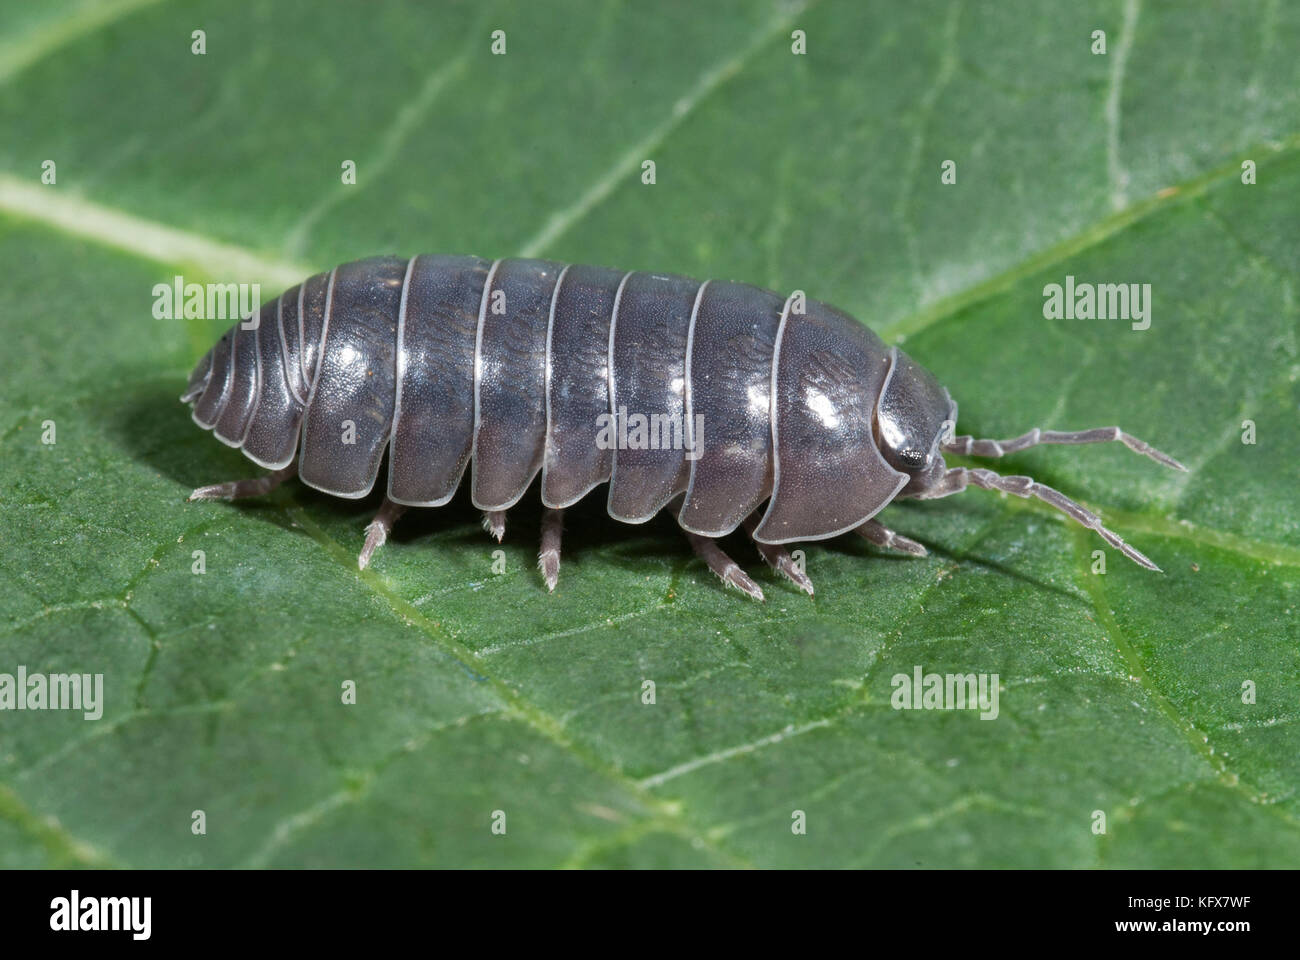 Woodlice Uk Stock Photos and Images